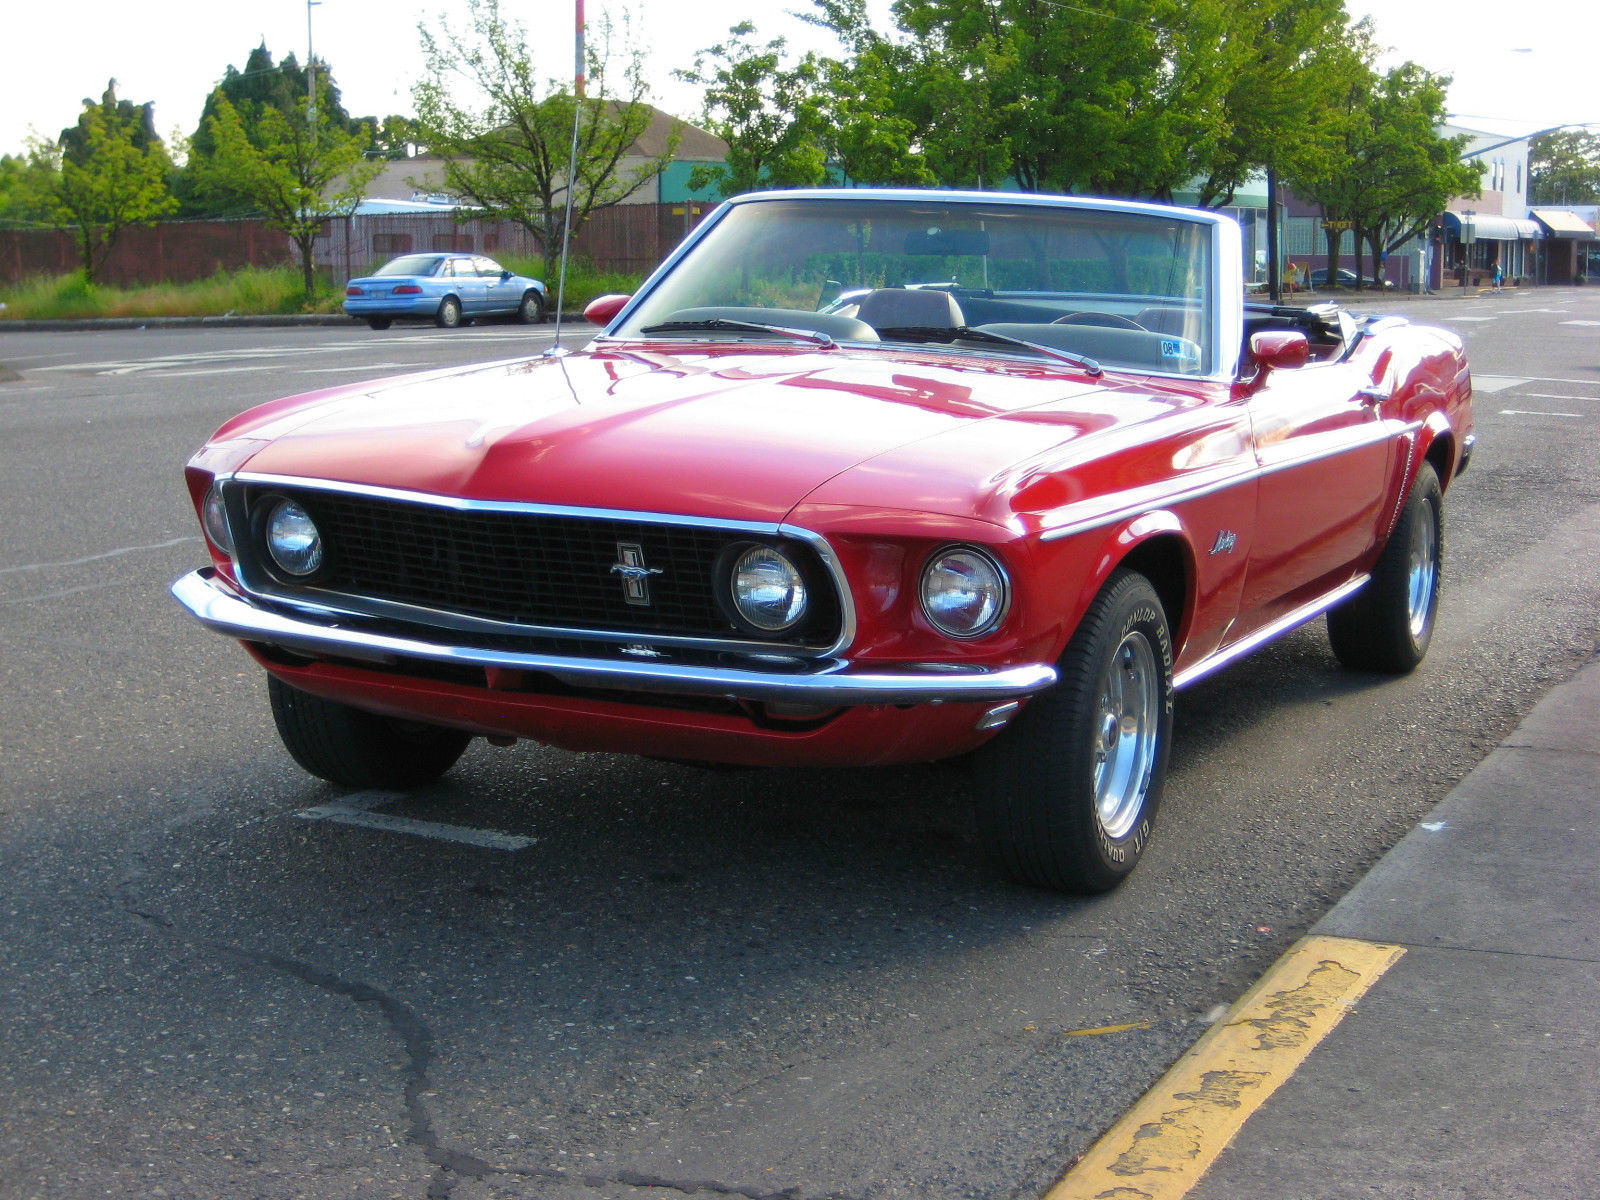 1969 ford mustang convertible 302 v8 4 barrel 4 11 rear end a true classic. Black Bedroom Furniture Sets. Home Design Ideas